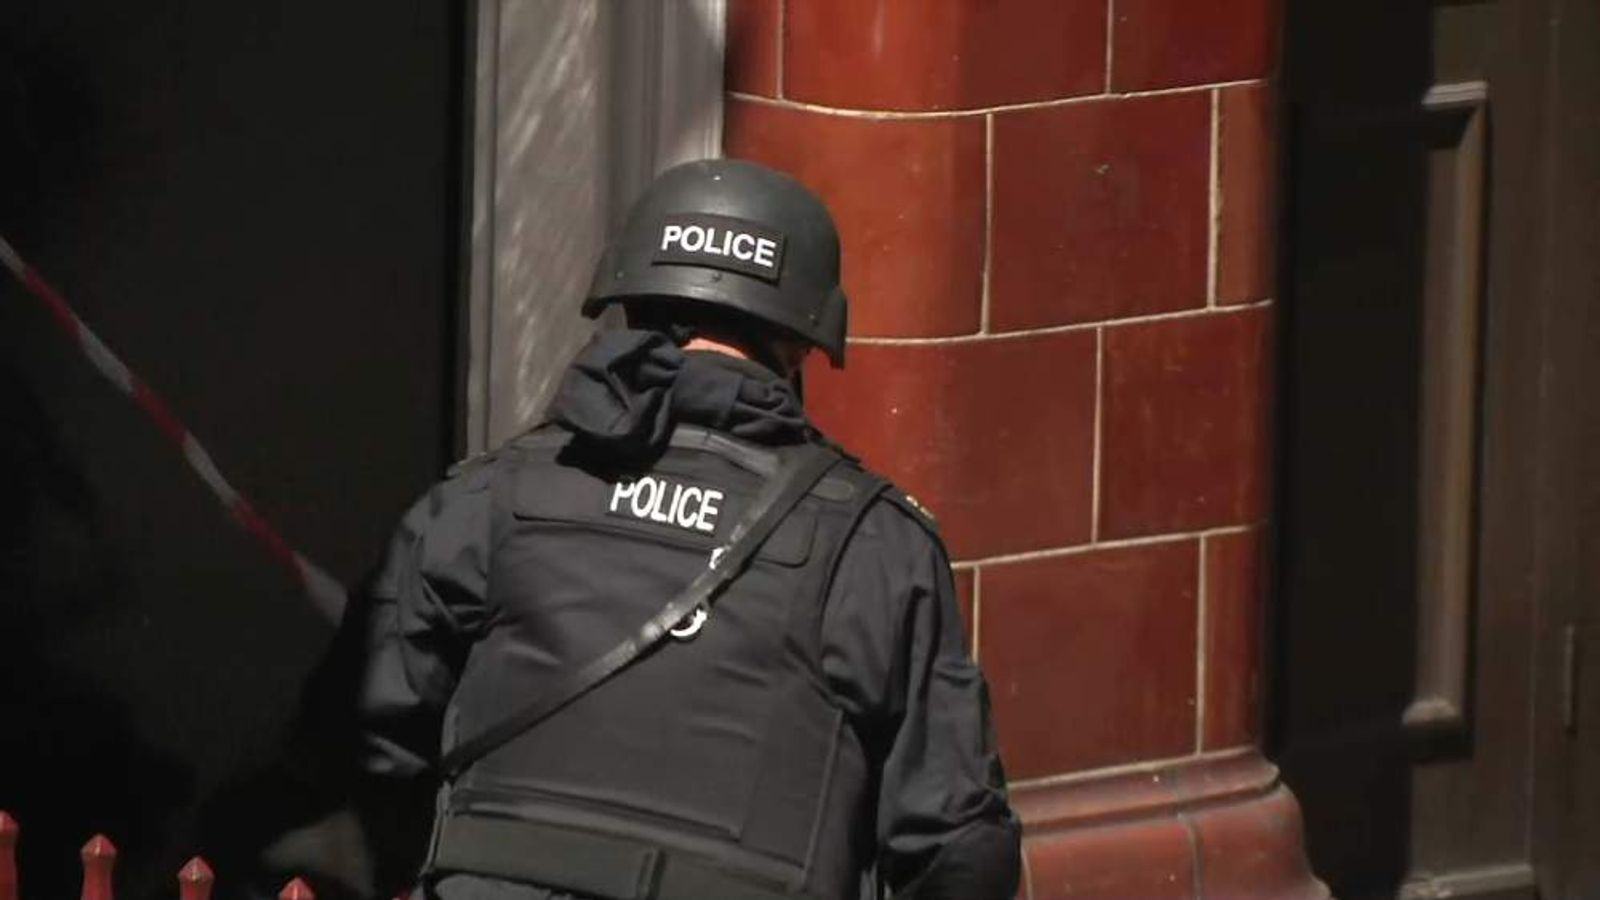 Police anon at today's police simulated terror attack